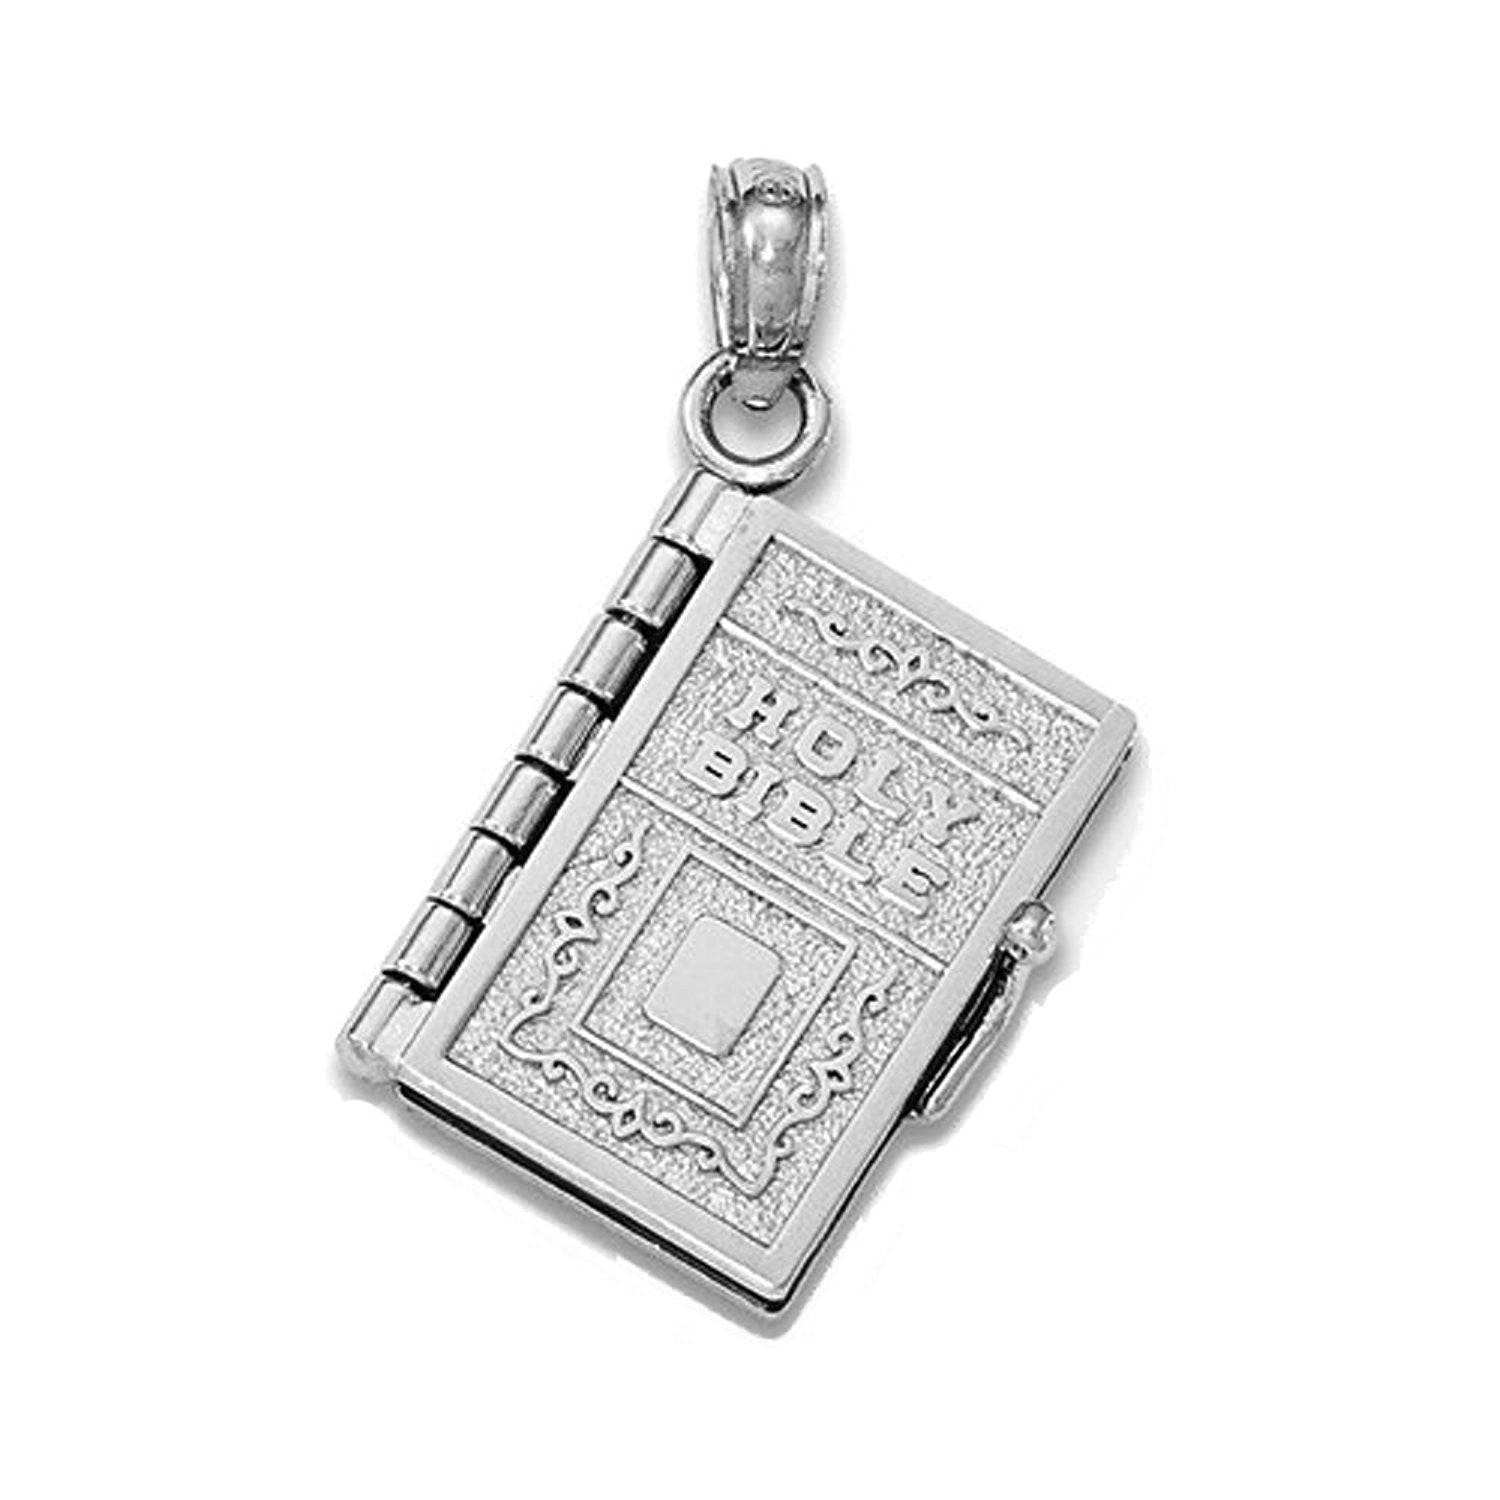 14k White Gold Lords Prayer Holy Bible Book Pendant Charm